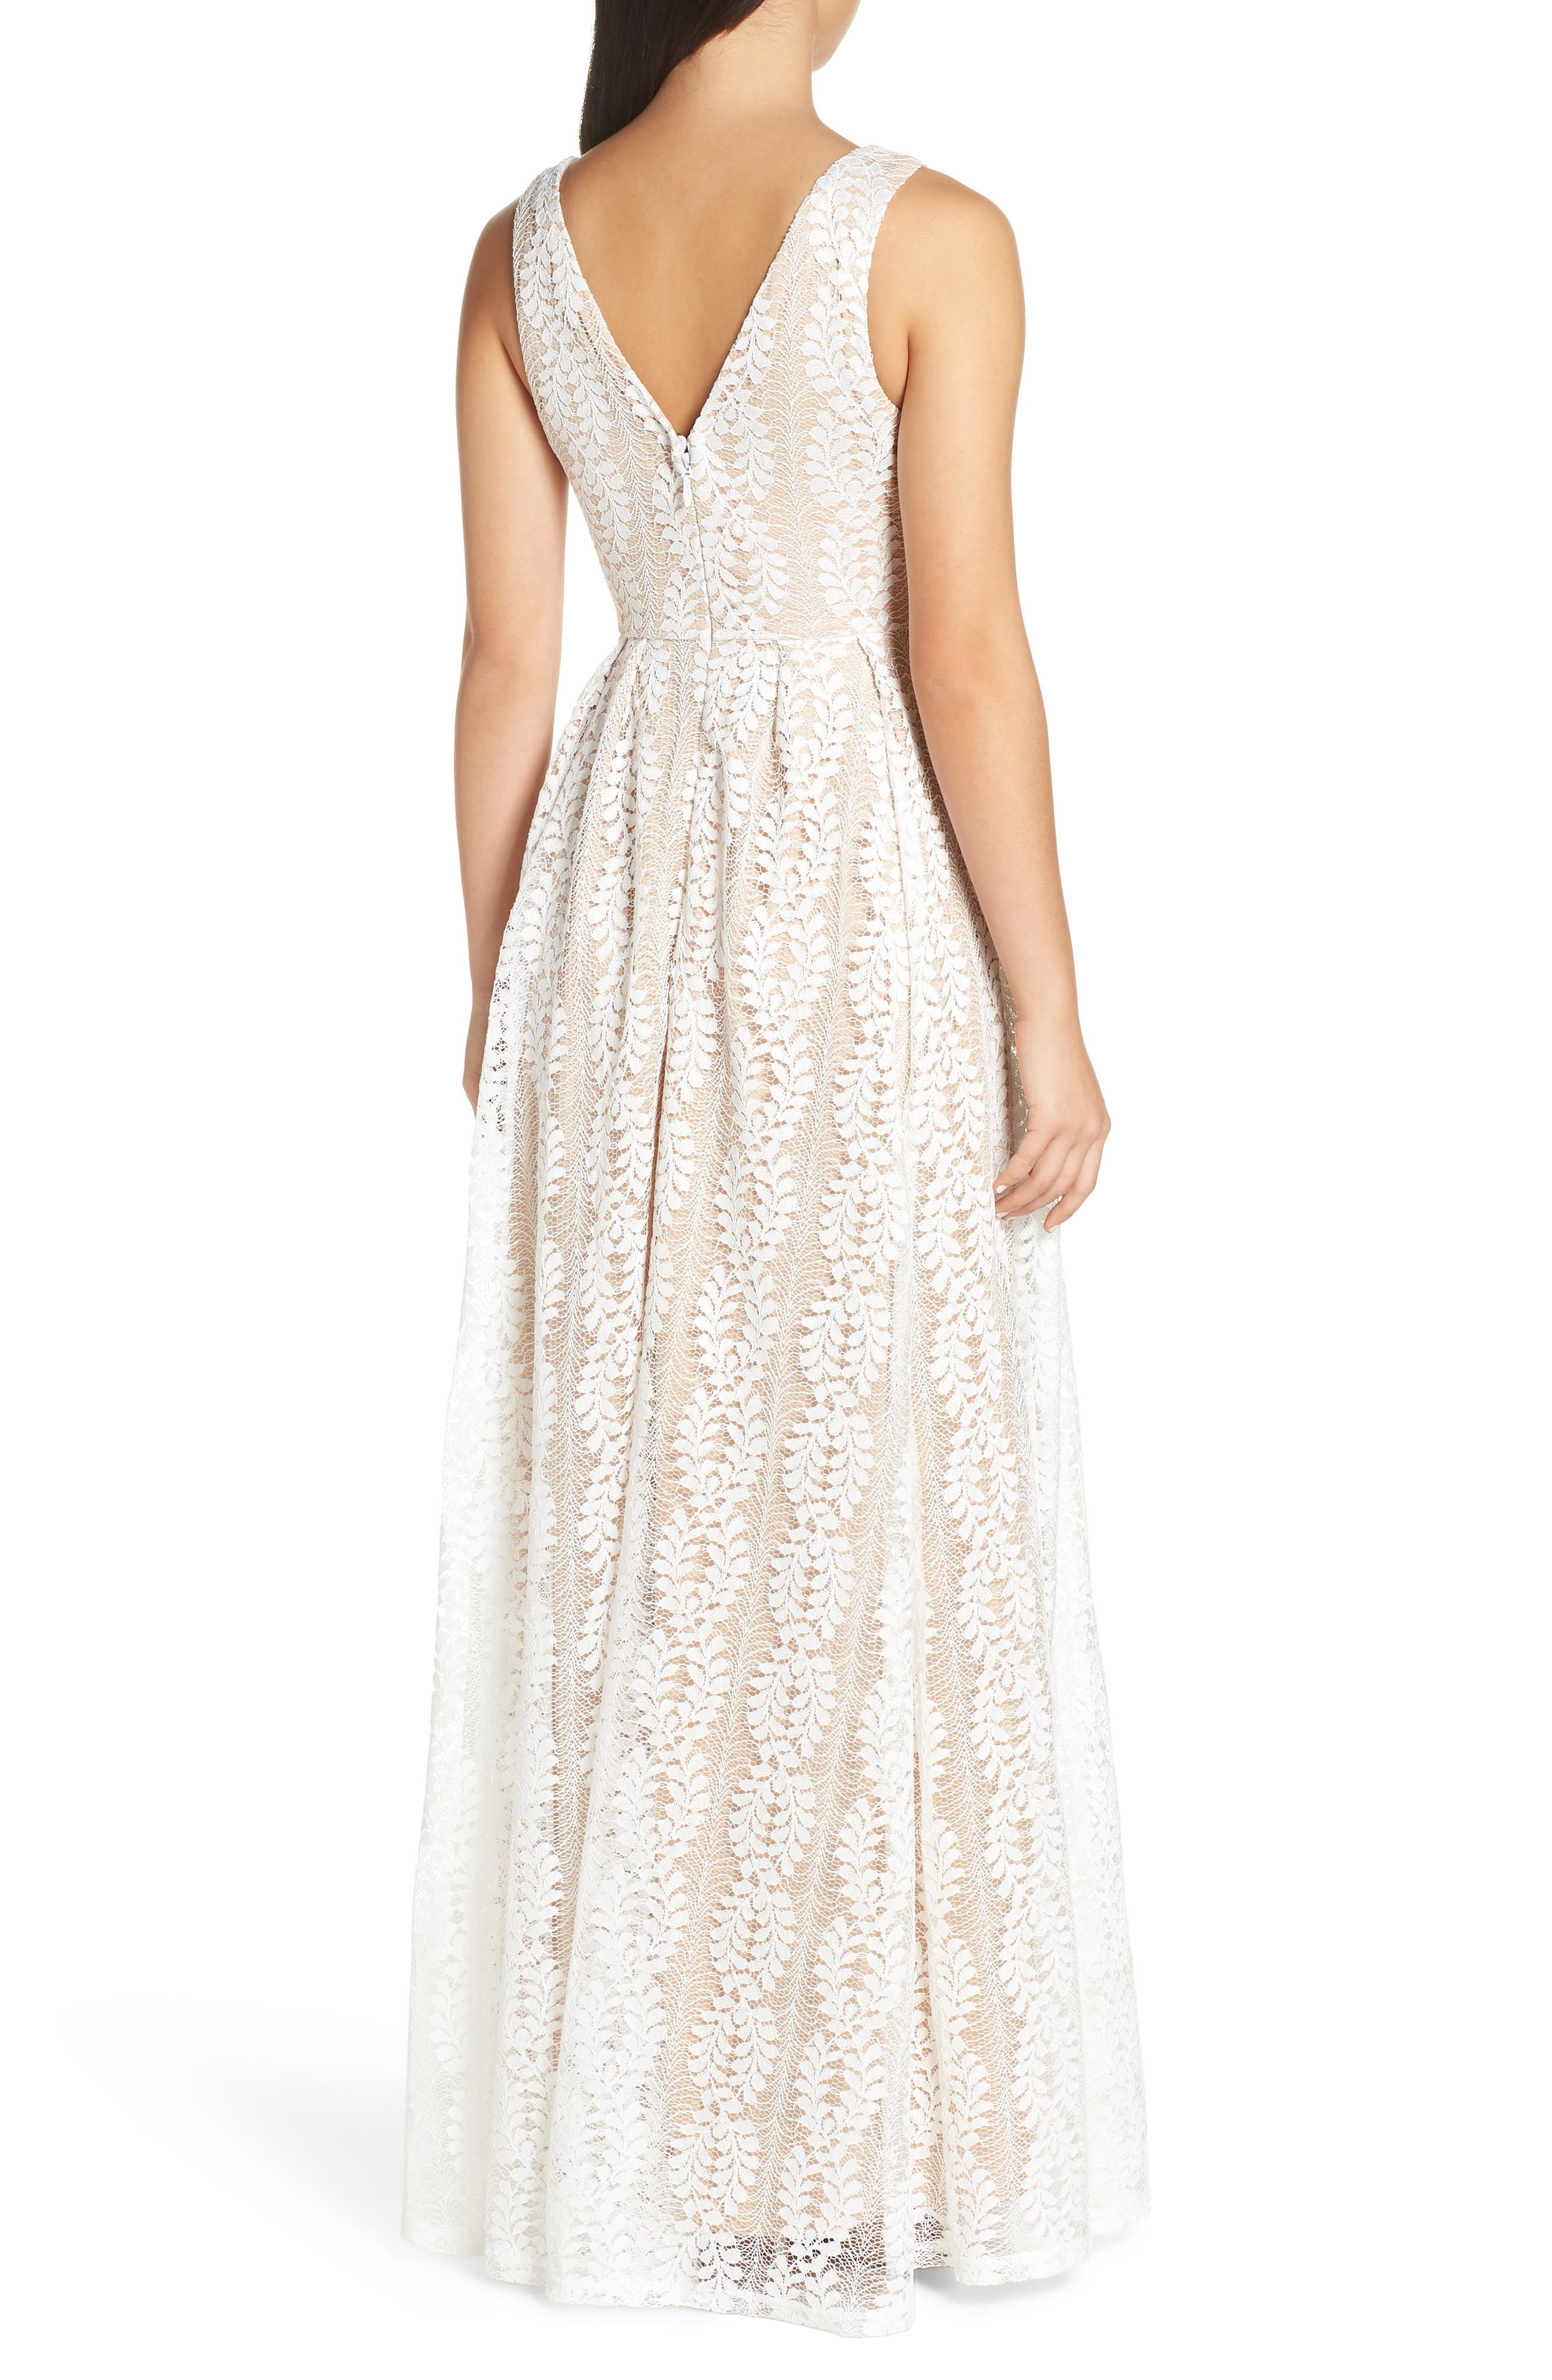 LULUS, Eliana Lace V-Neck Gown, Alternate thumbnail 2, color, WHITE/ NUDE